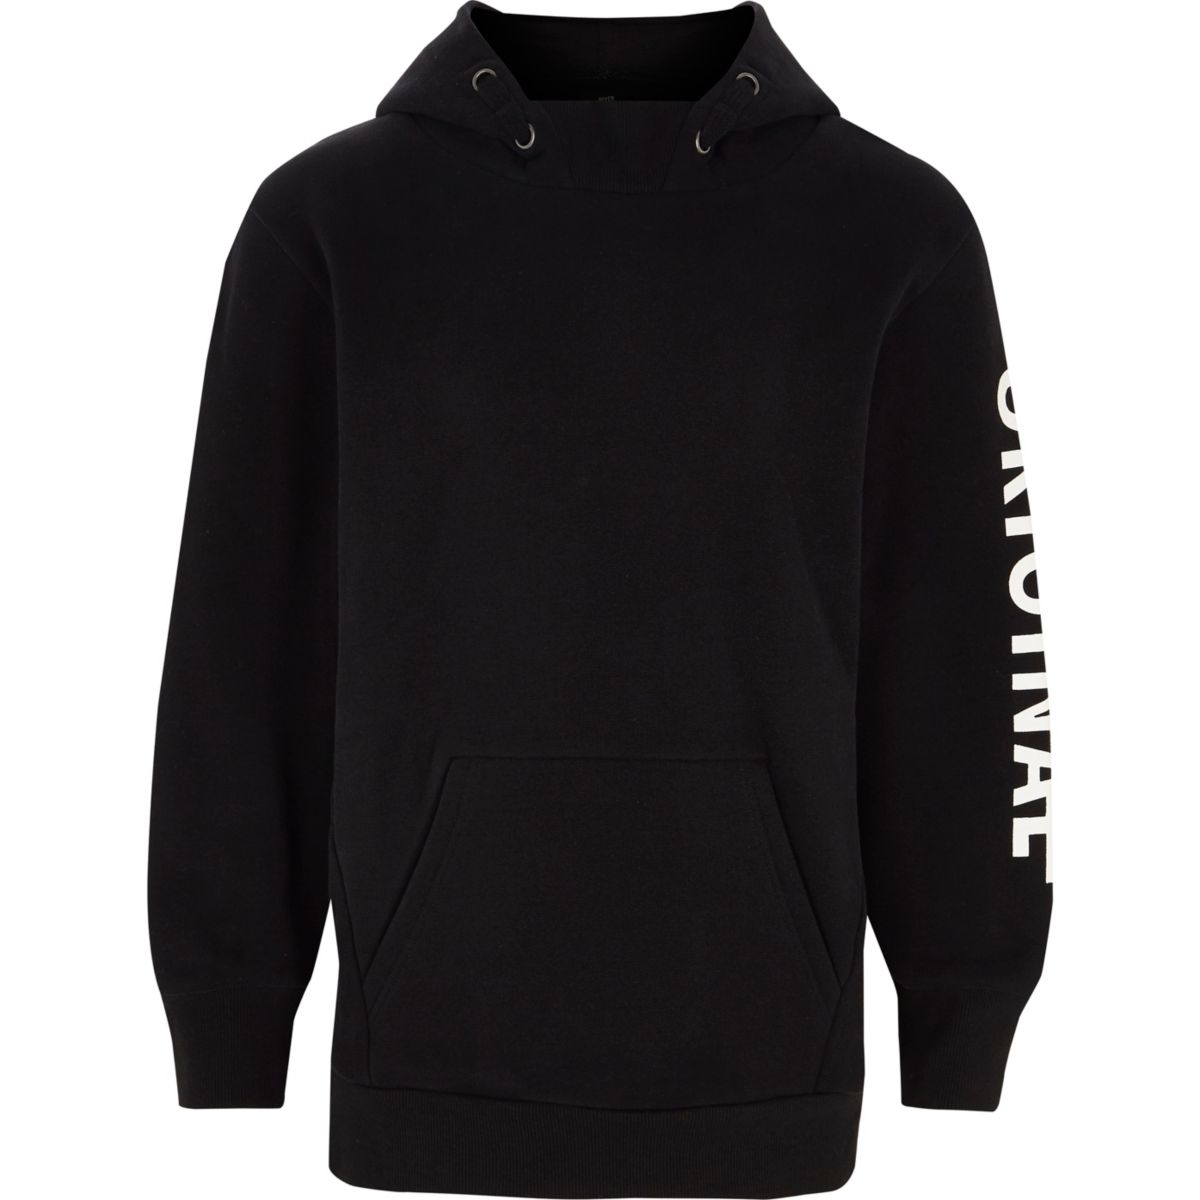 Boys Hoodies & Sweatshirts. Shop boys hoodies and sweatshirts at Zumiez, carrying boys pullover hoodies, zip hoodies, and crew neck sweatshirts from brands like DC, Neff, and Volcom.